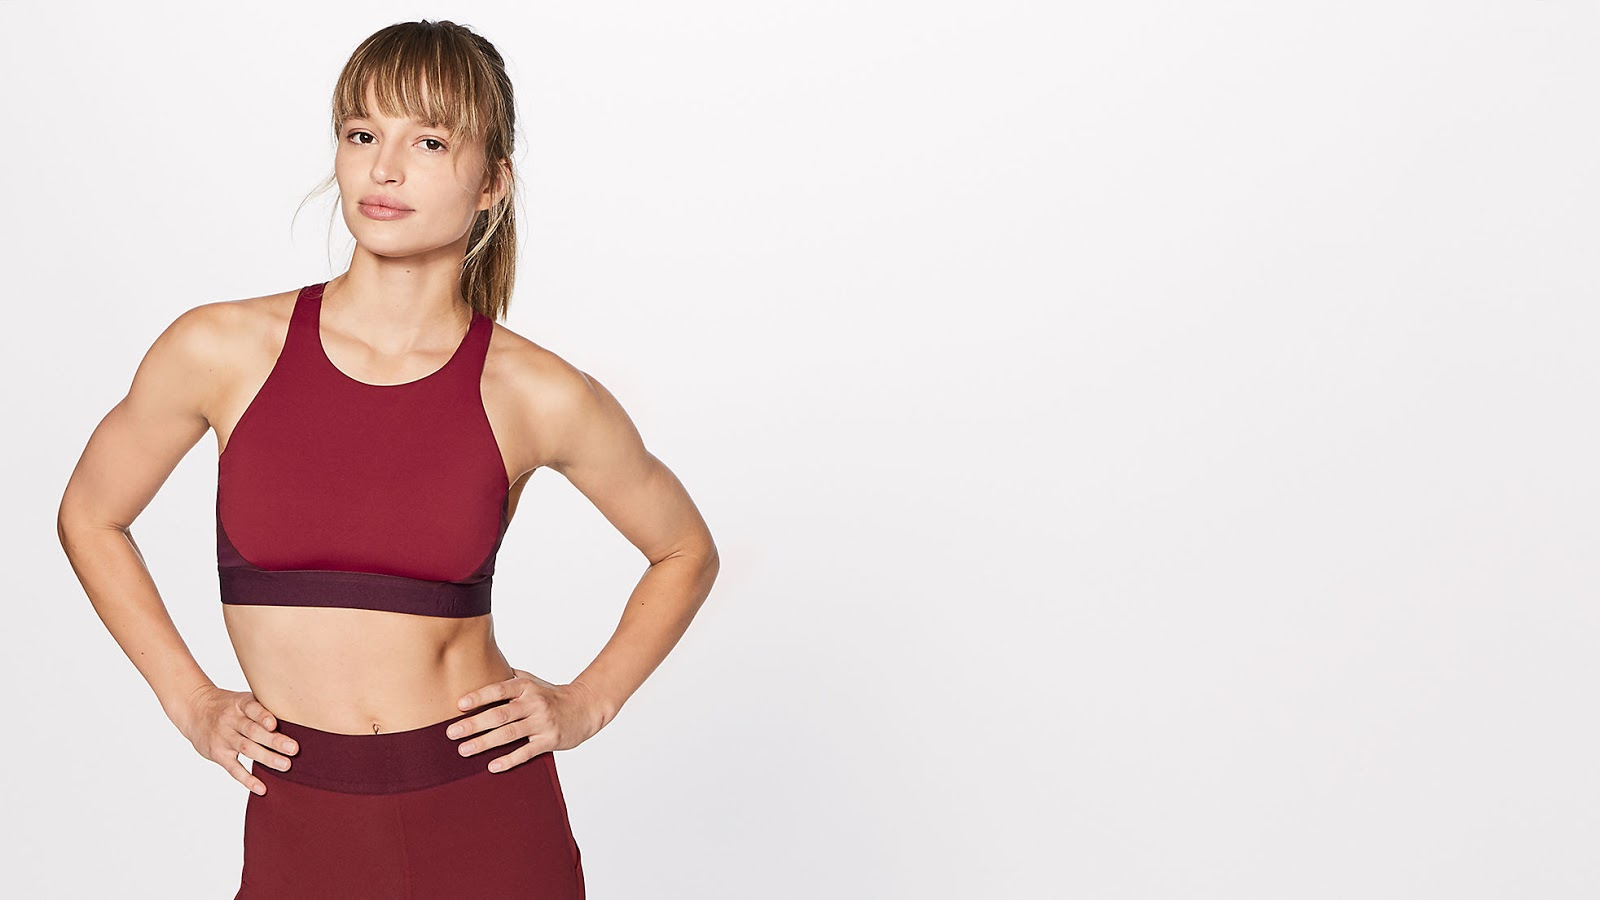 cfe5b6efc6 New Bob and Weave Bra and Box It Out Tights. Shown in Oxblood Deep Rouge  and Heathered Black.